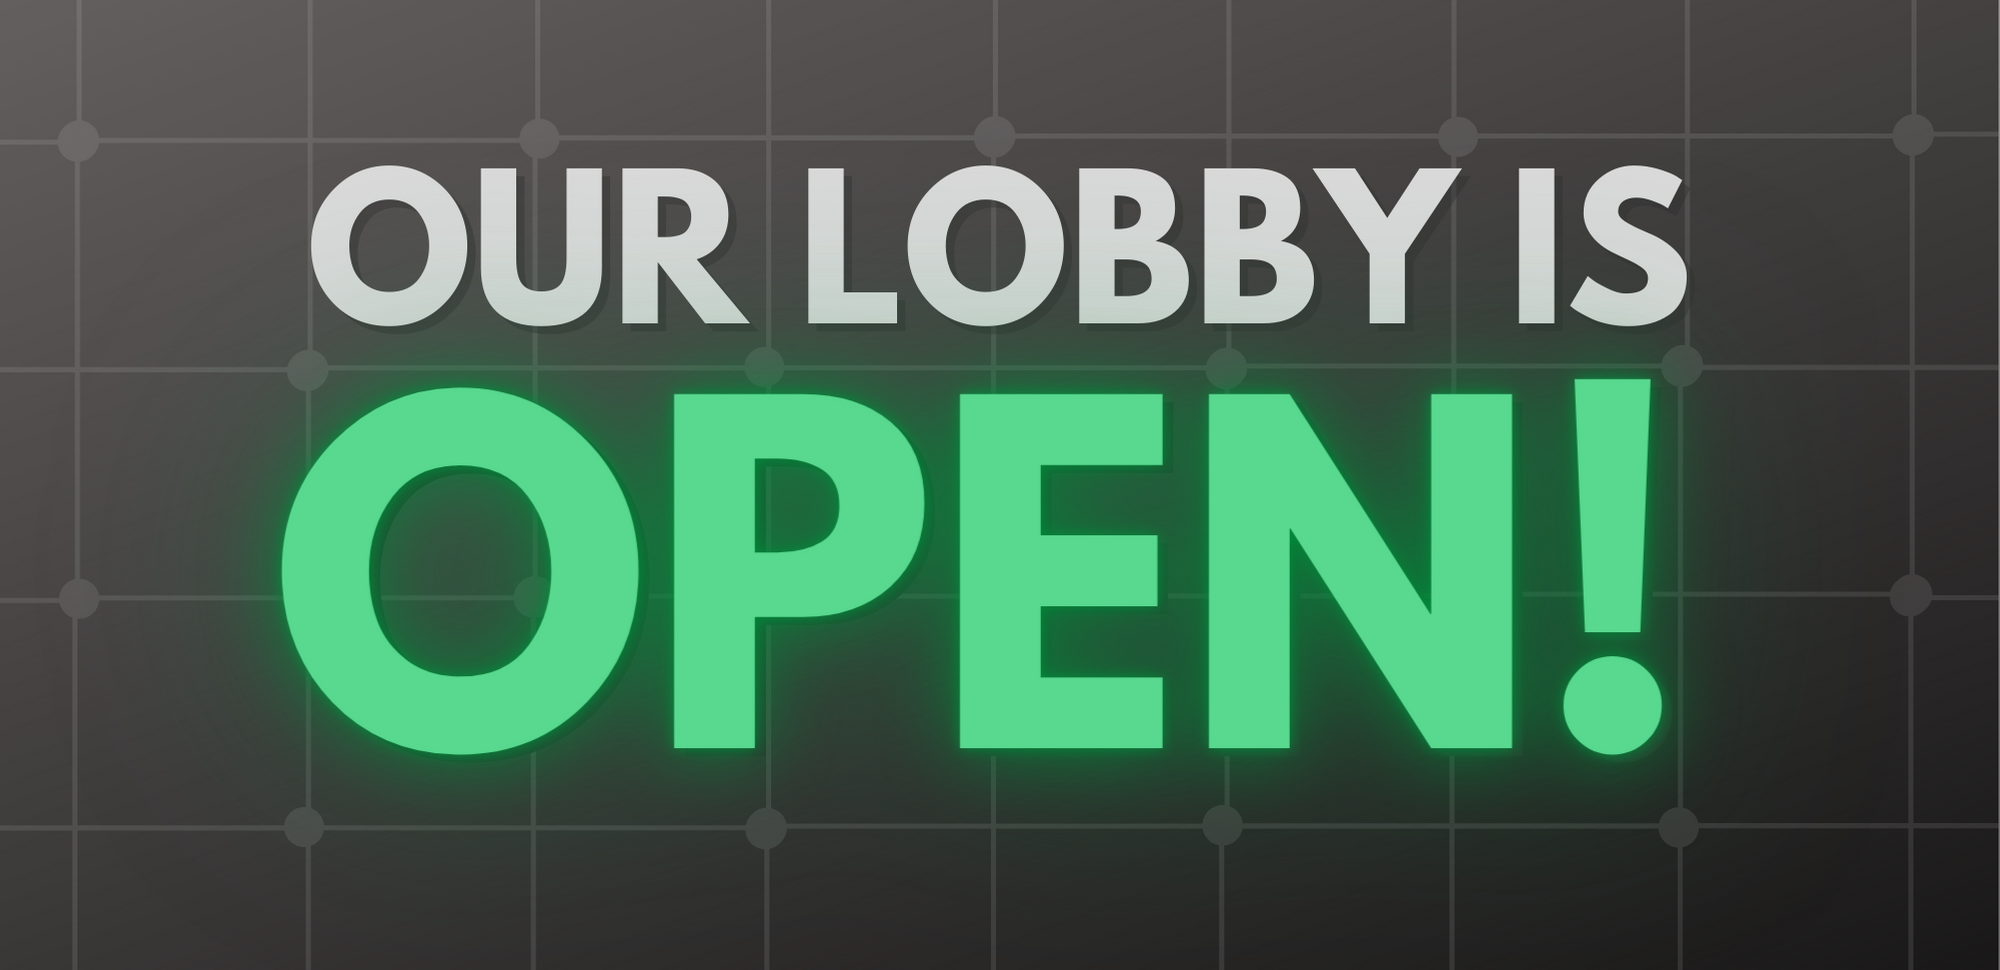 Our Lobby is Open